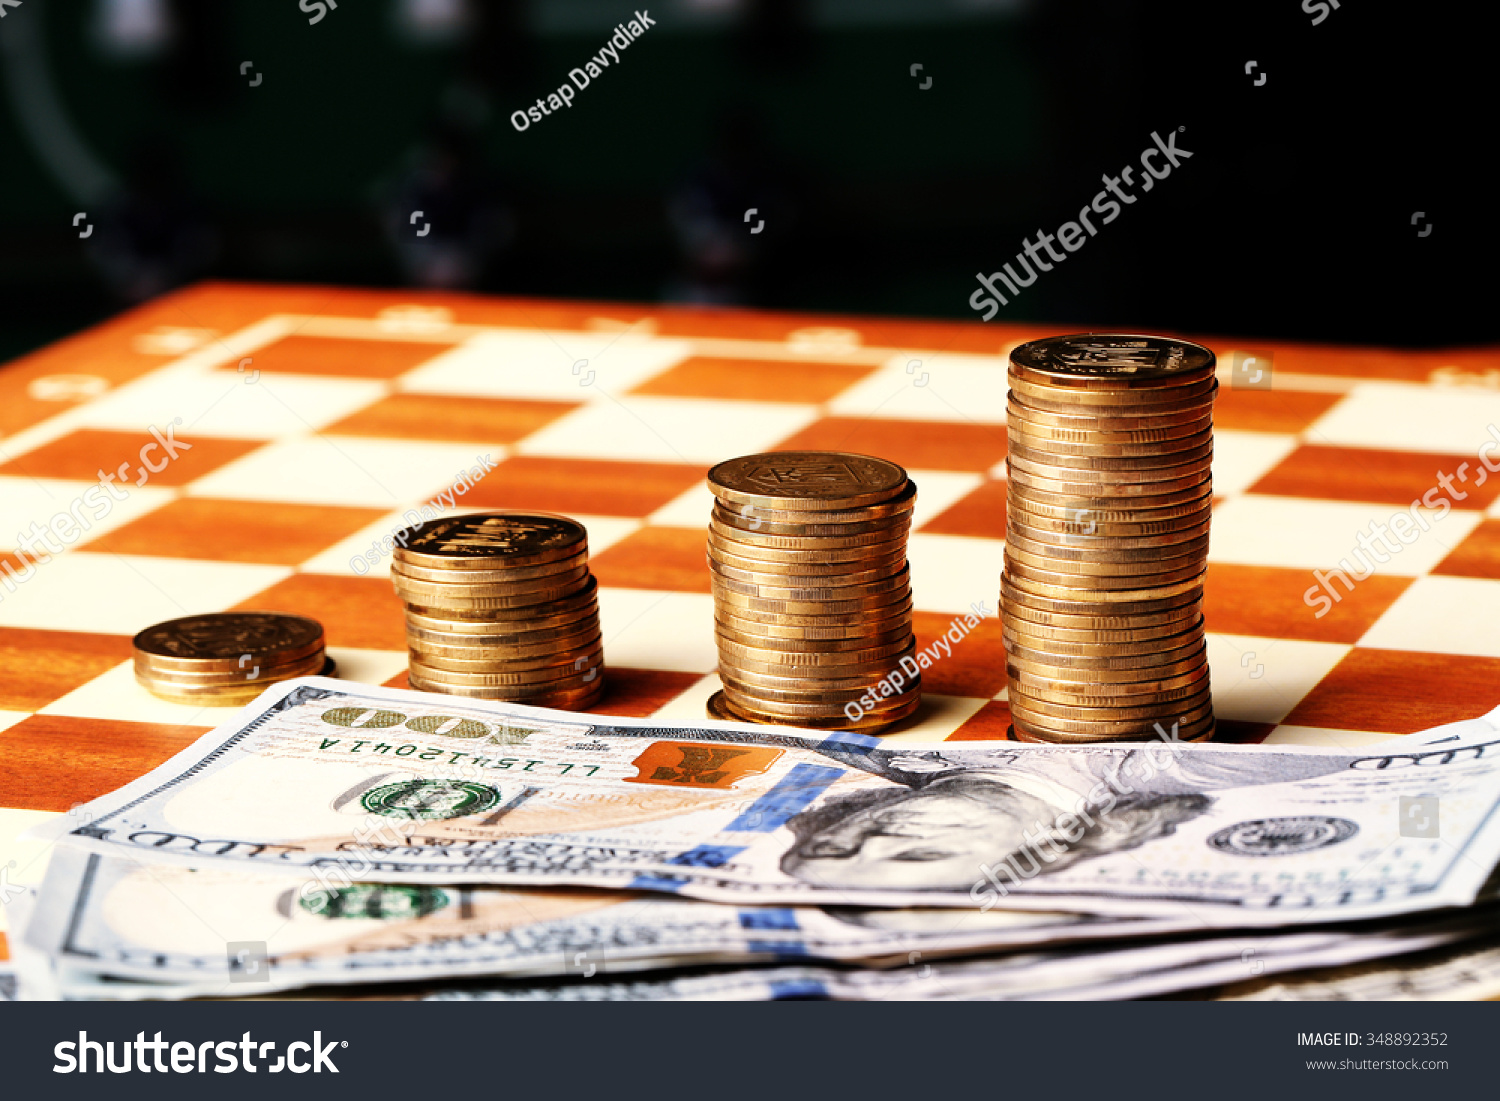 Tower Coins Dollars On Chessboard Money Stock Photo Edit Now Circuitboardnotebook And A